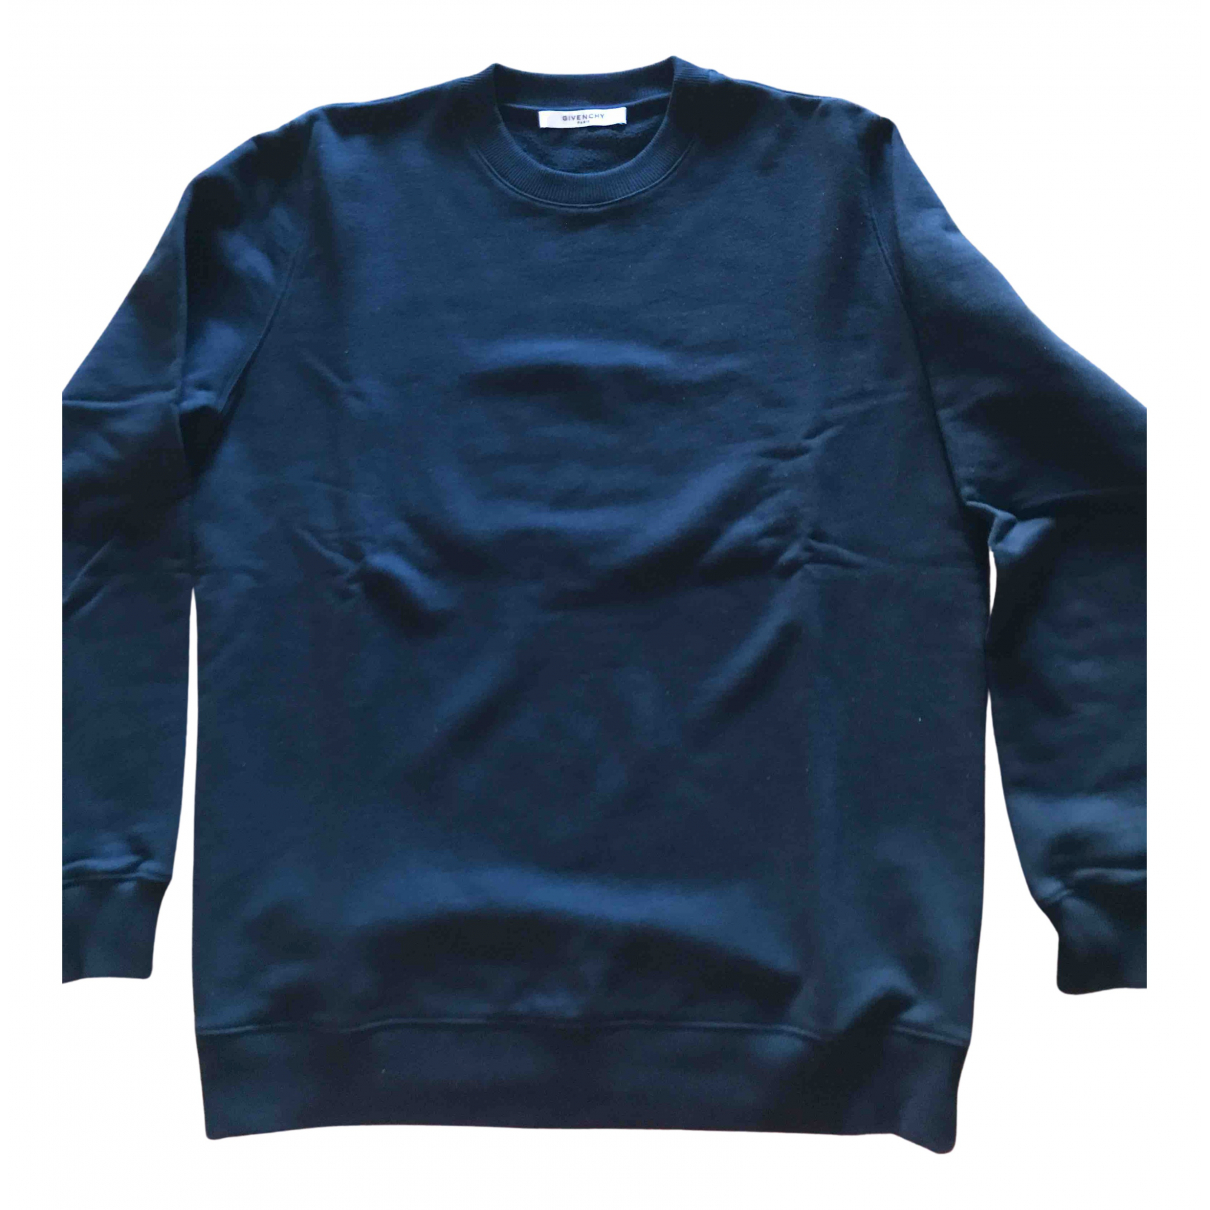 Givenchy N Black Cotton Knitwear & Sweatshirts for Men M International